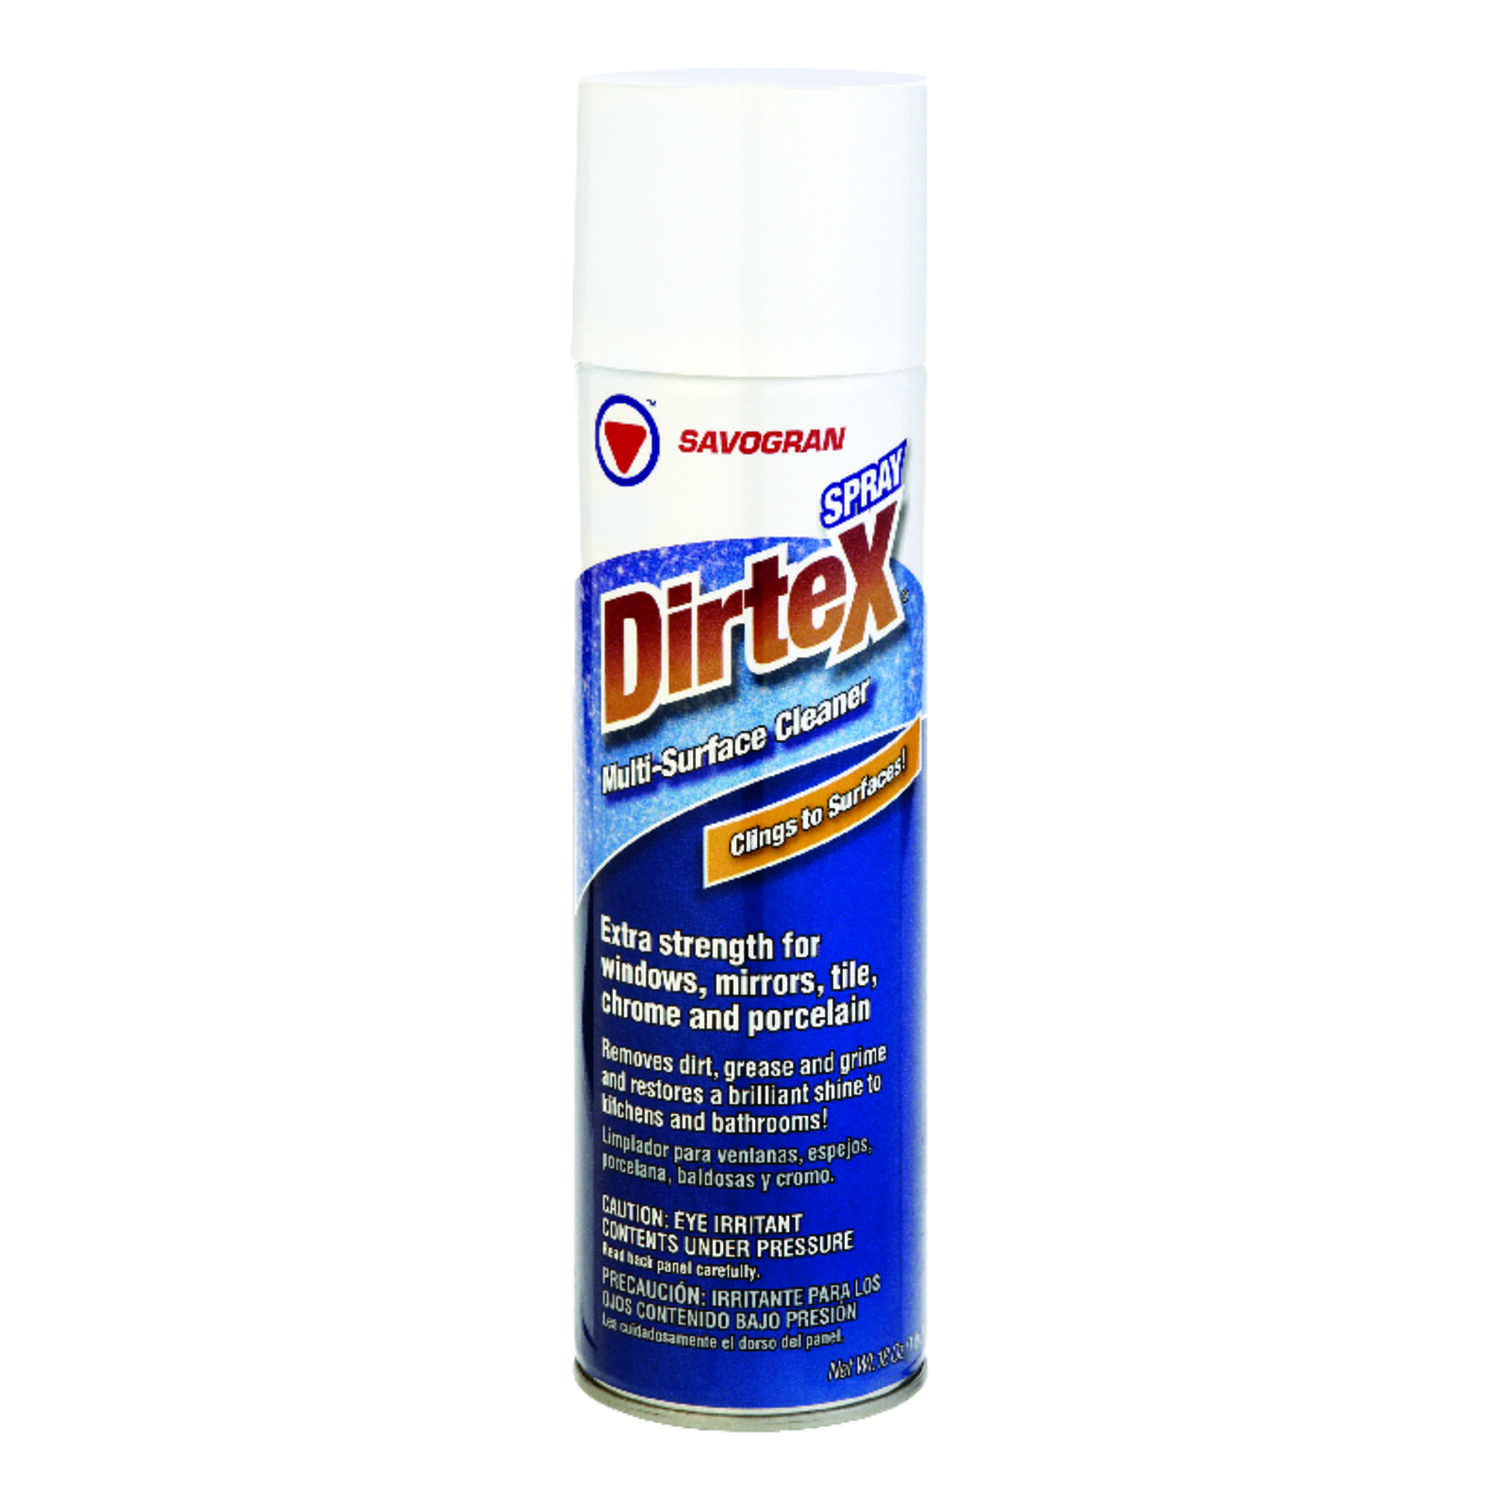 Savogran  Dirtex  No Scent All Purpose Cleaner  18 oz. Liquid